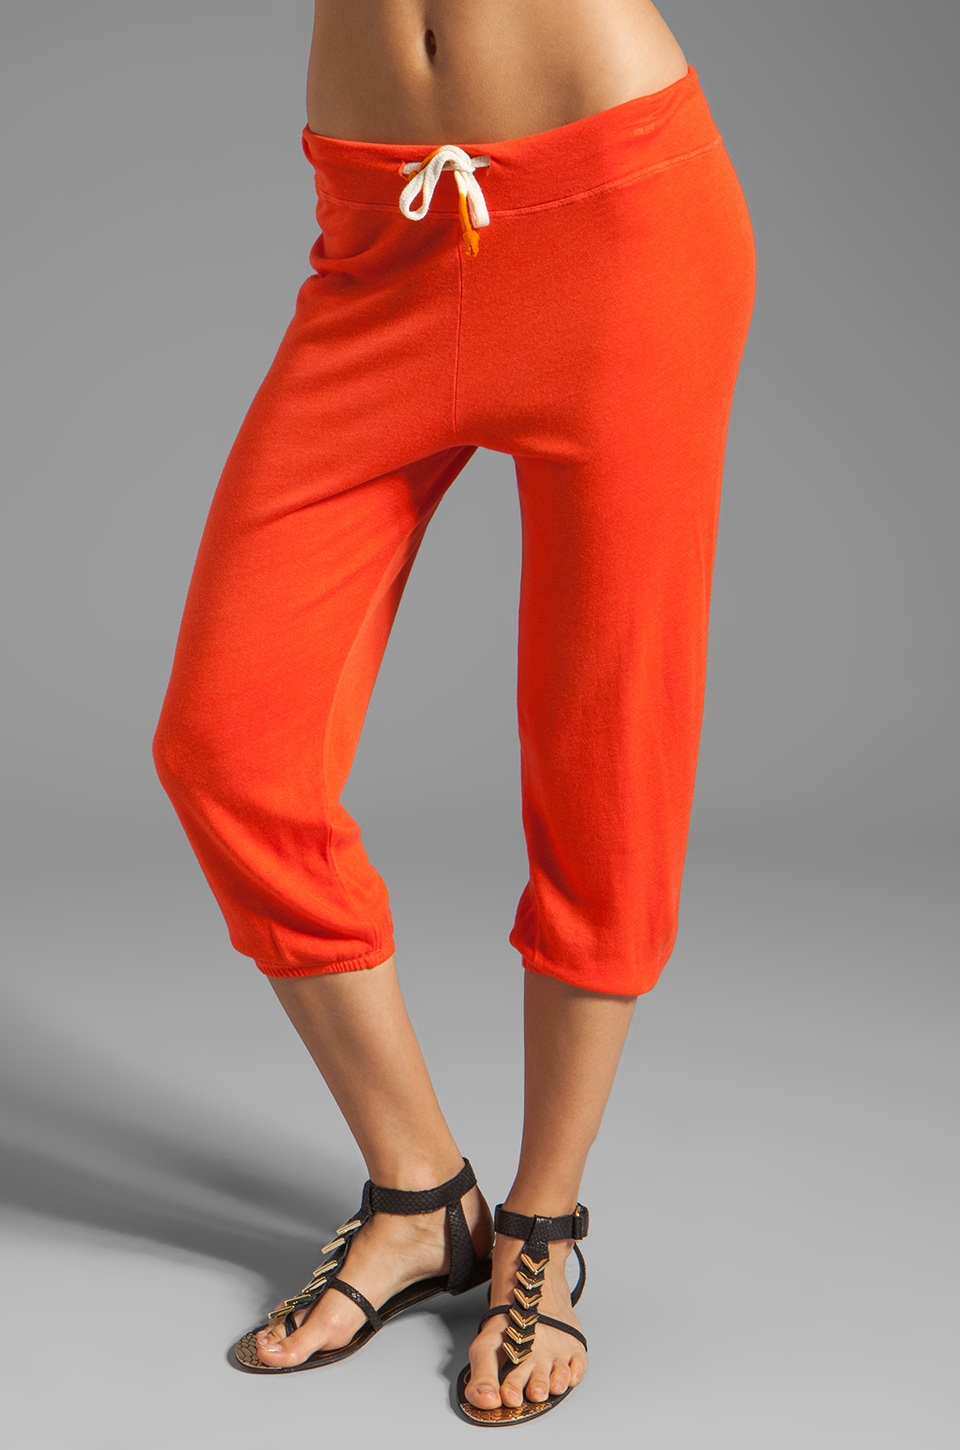 SUNDRY Capri Pants in Poppy